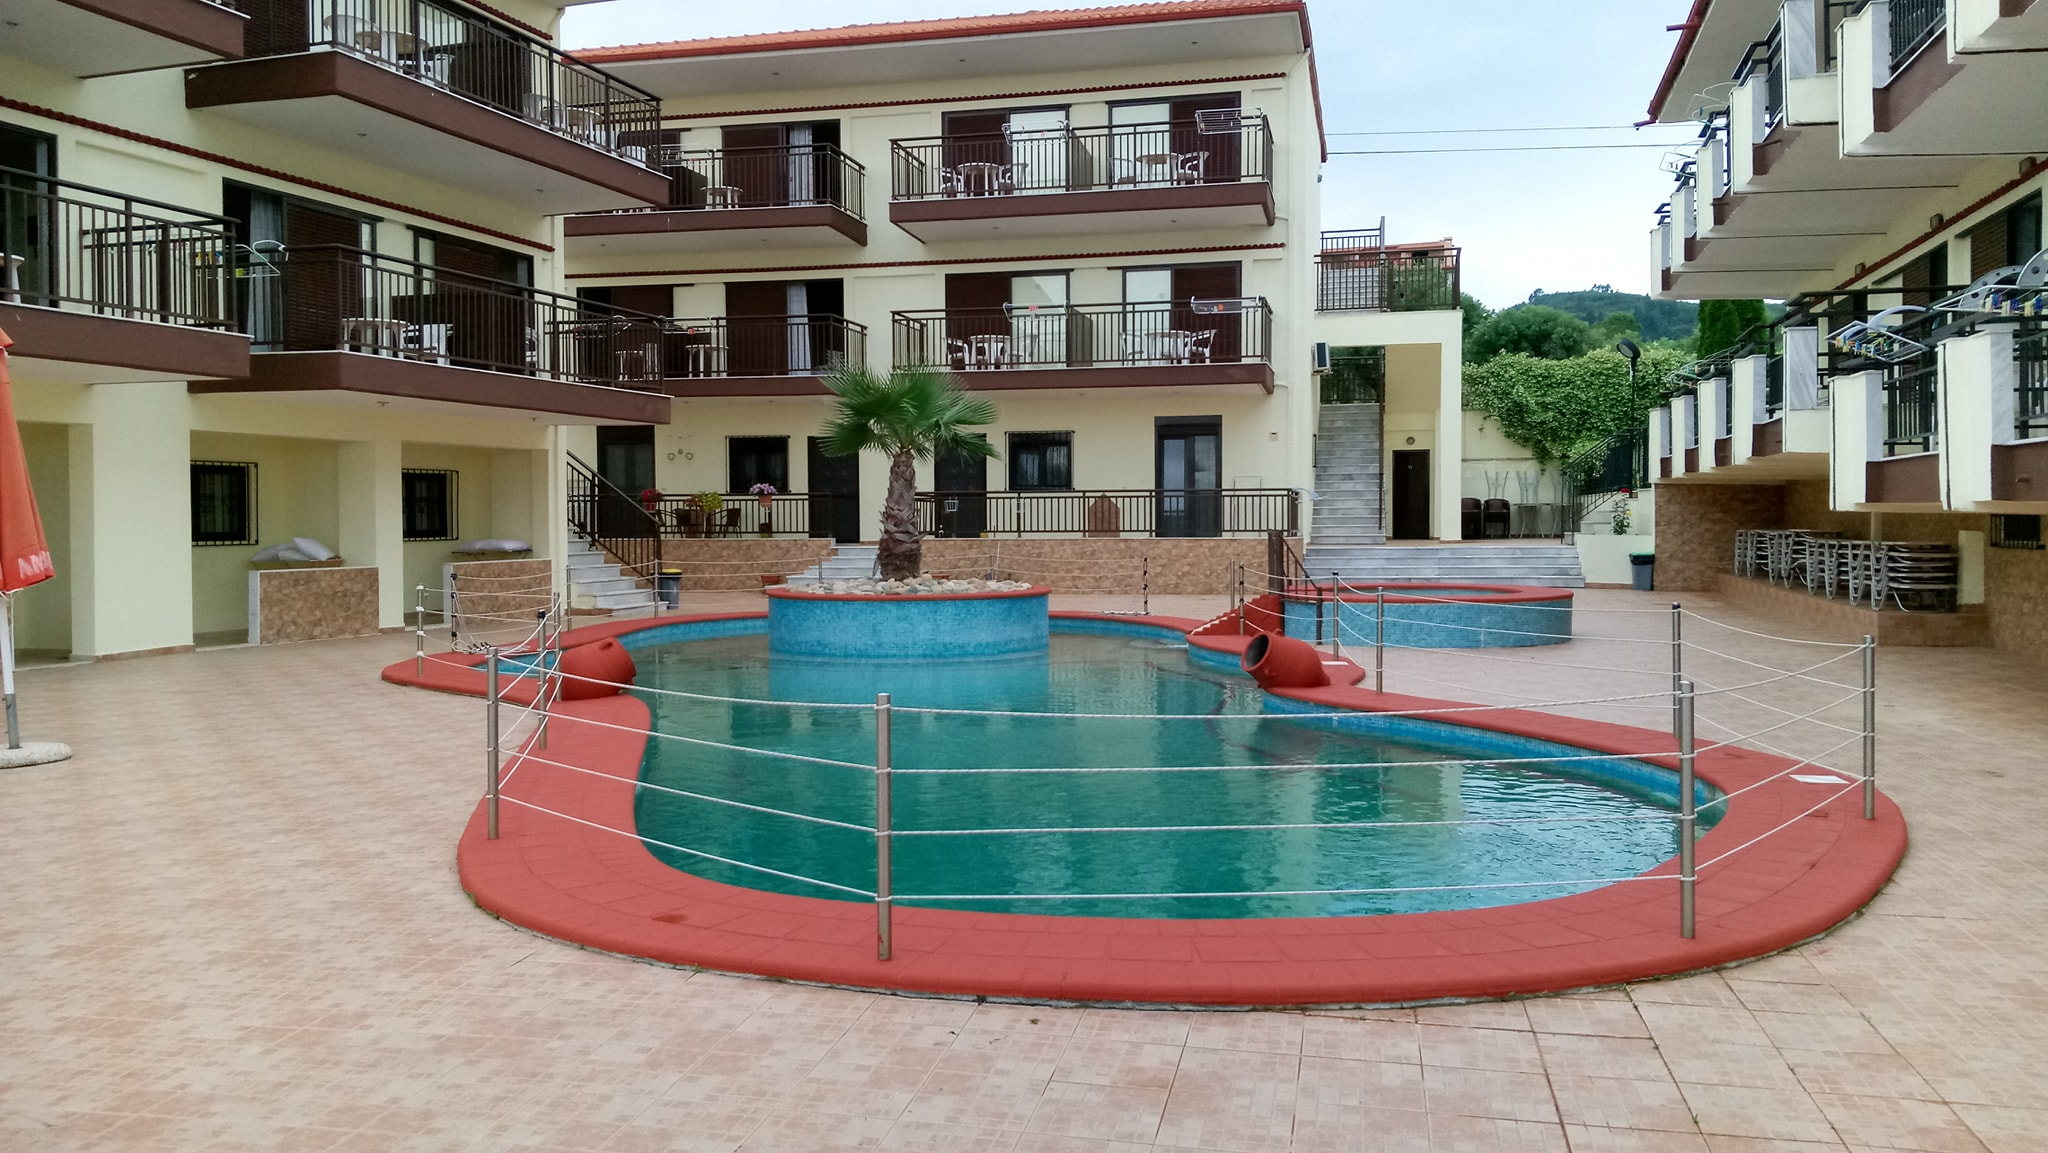 Villa Panorama Hotel, as seen from the pool